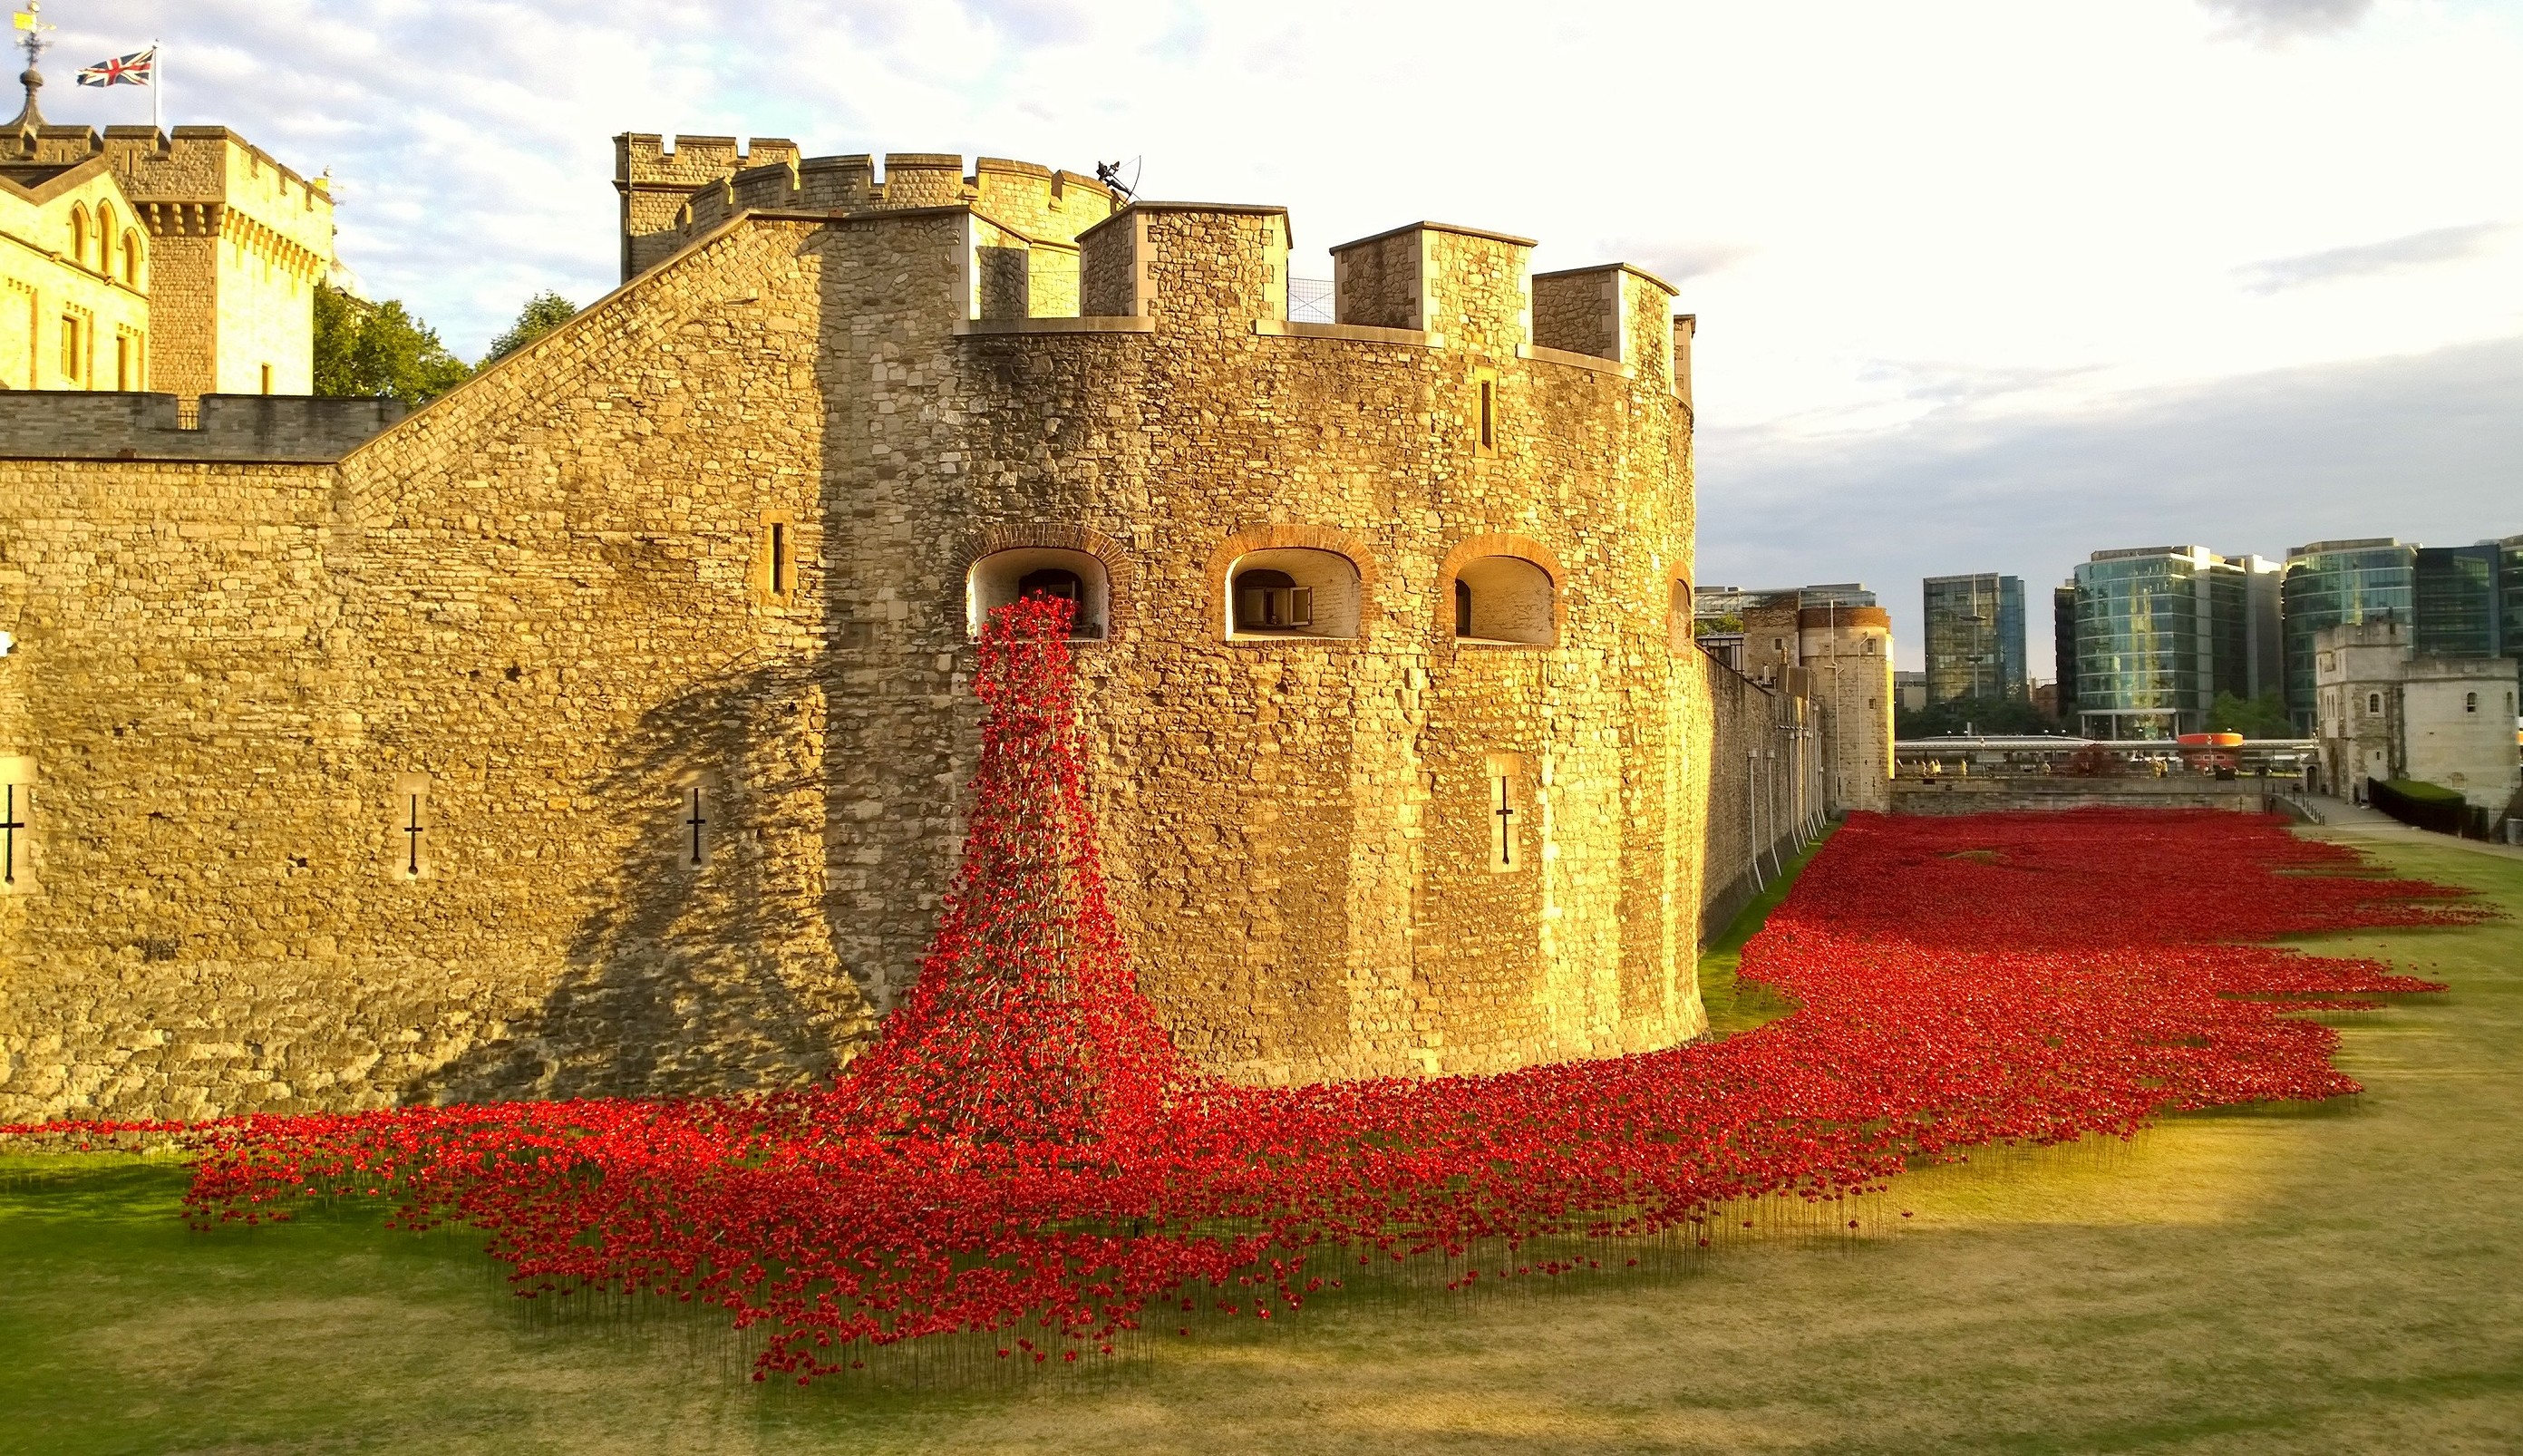 Tower of London Poppies Field Tower of London Poppies |